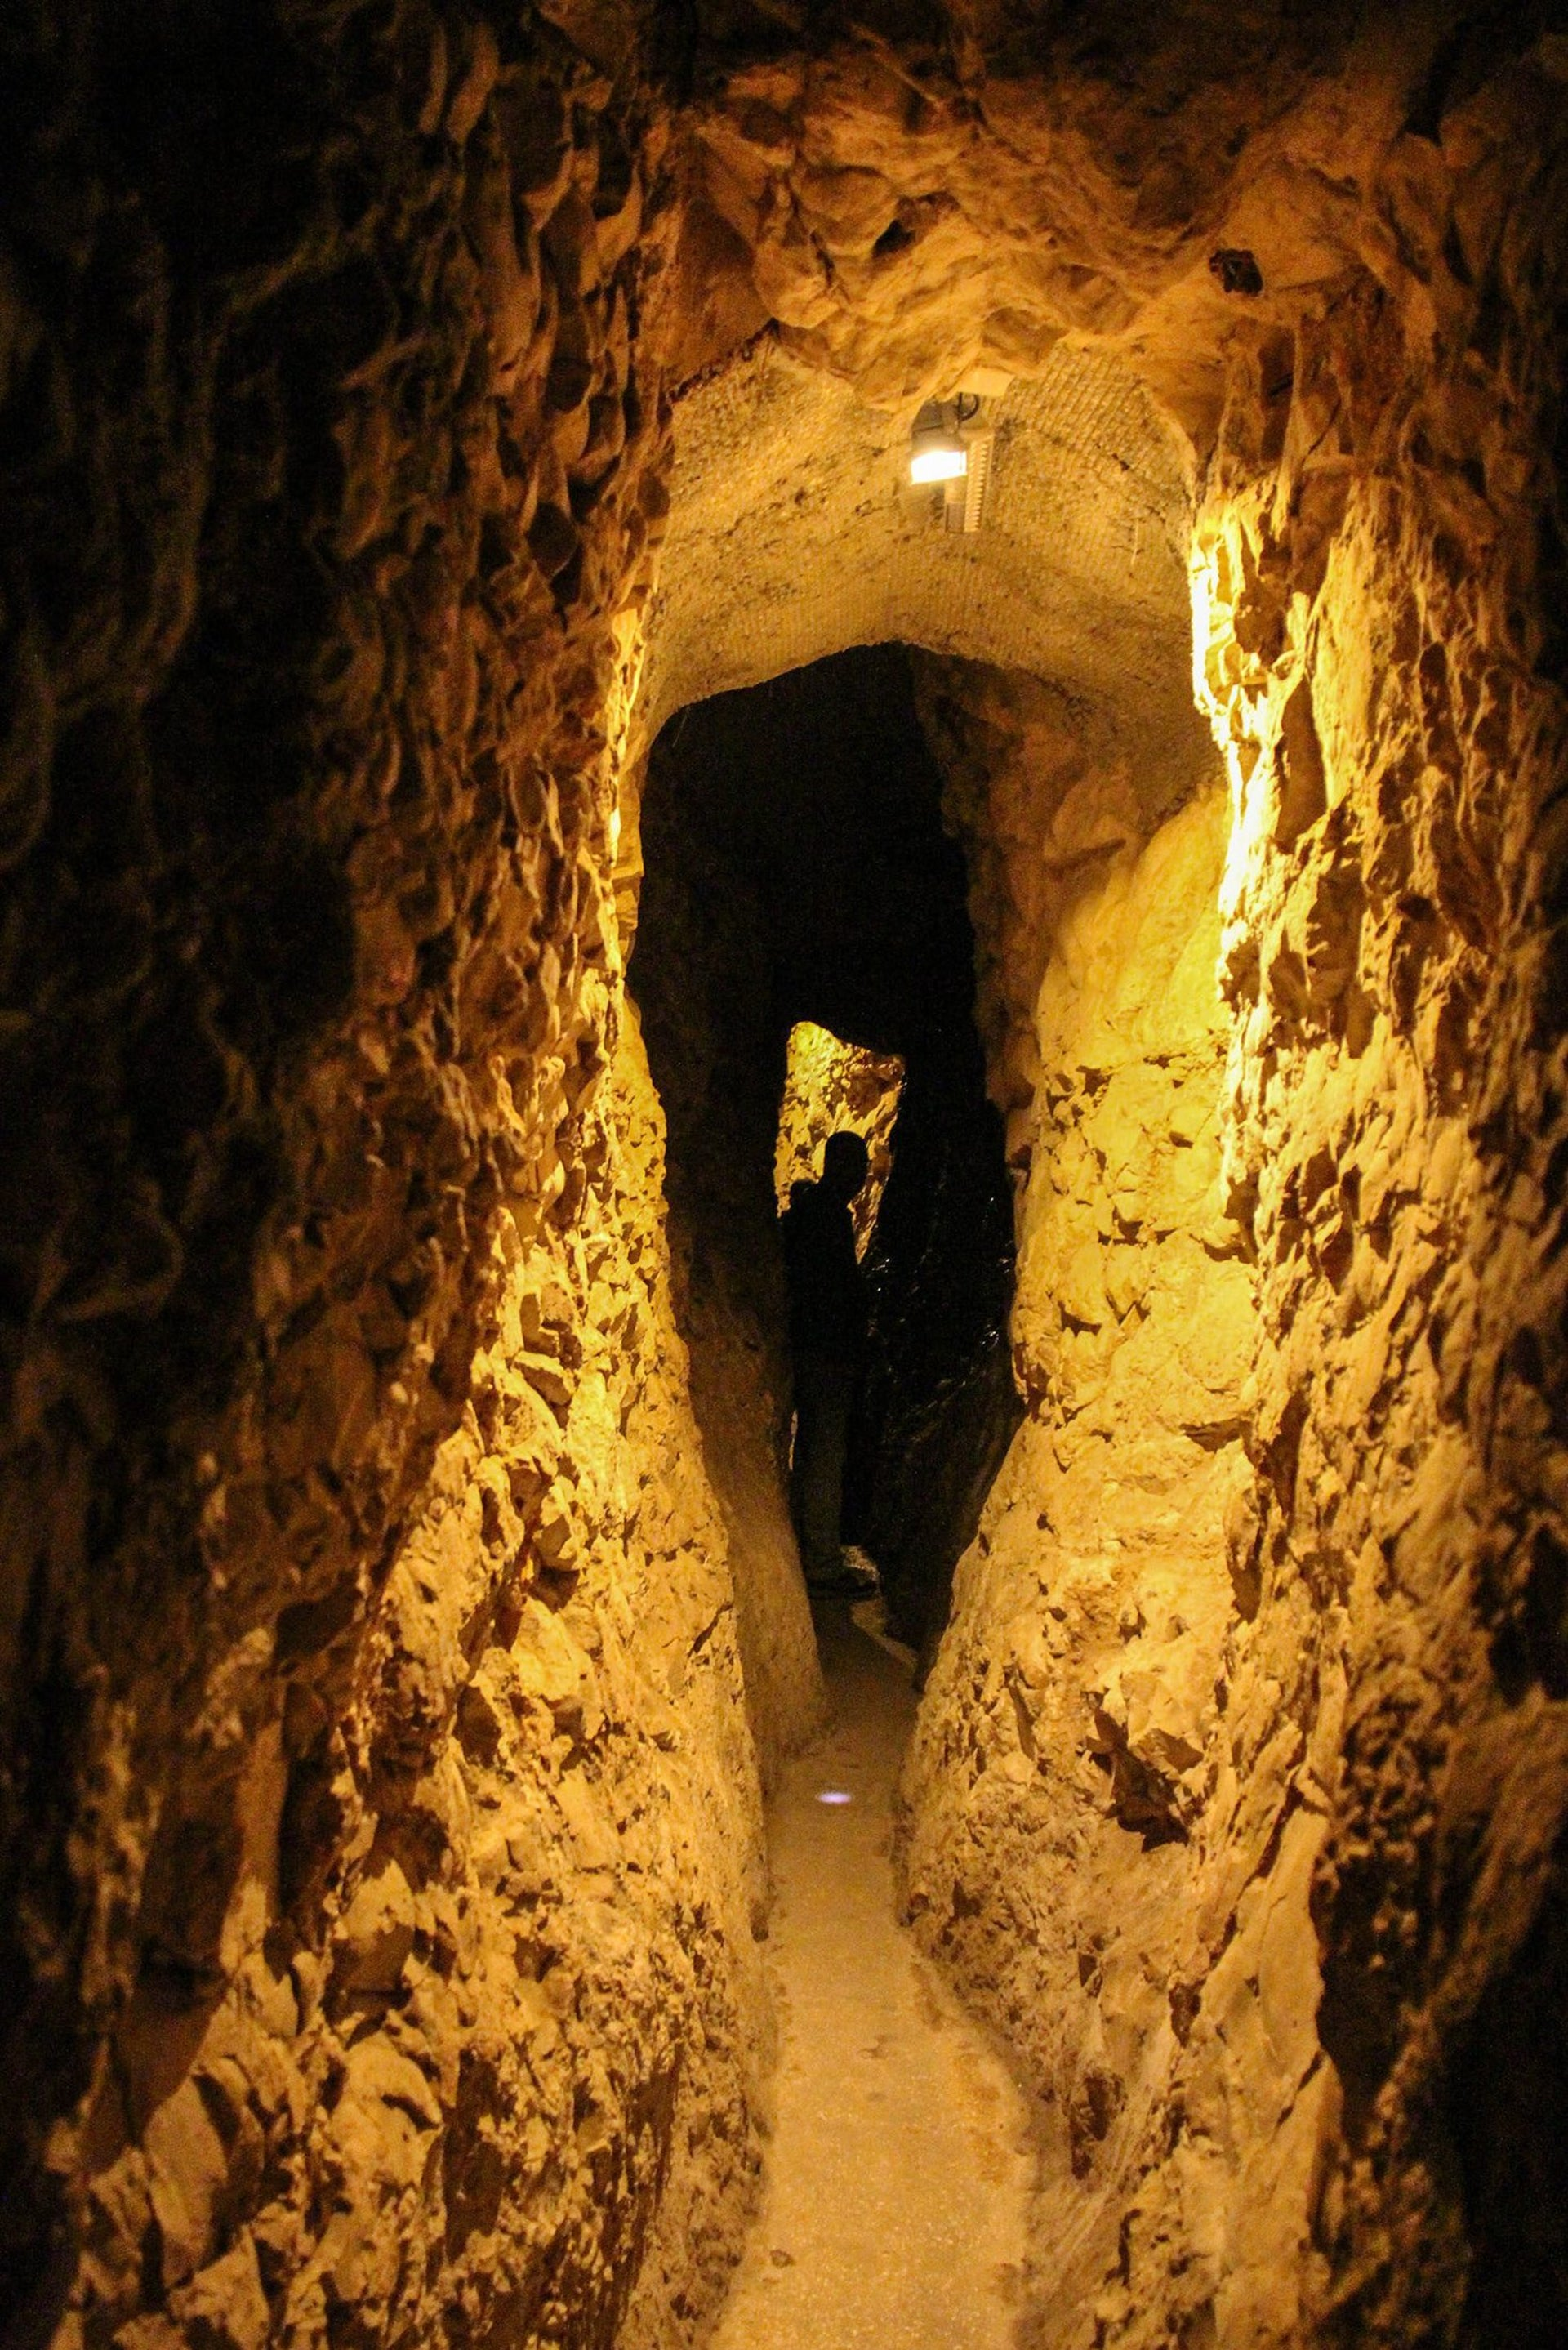 Underground tunnels that run under the Spring Tower and are part of the City of David's water supply system. Will they have to be redated too?